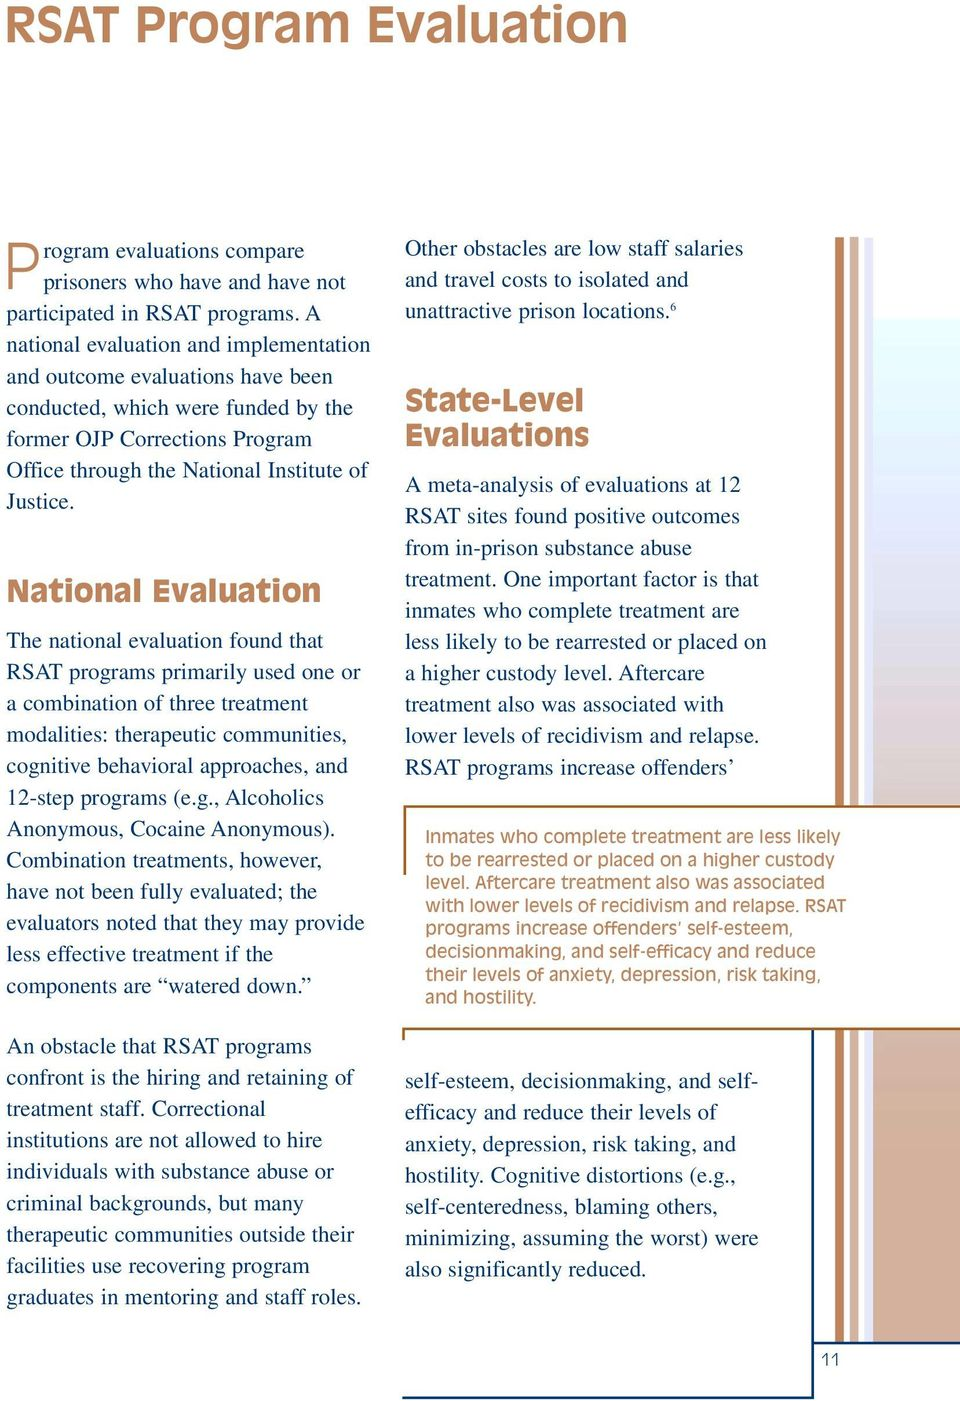 National Evaluation The national evaluation found that RSAT programs primarily used one or a combination of three treatment modalities: therapeutic communities, cognitive behavioral approaches, and